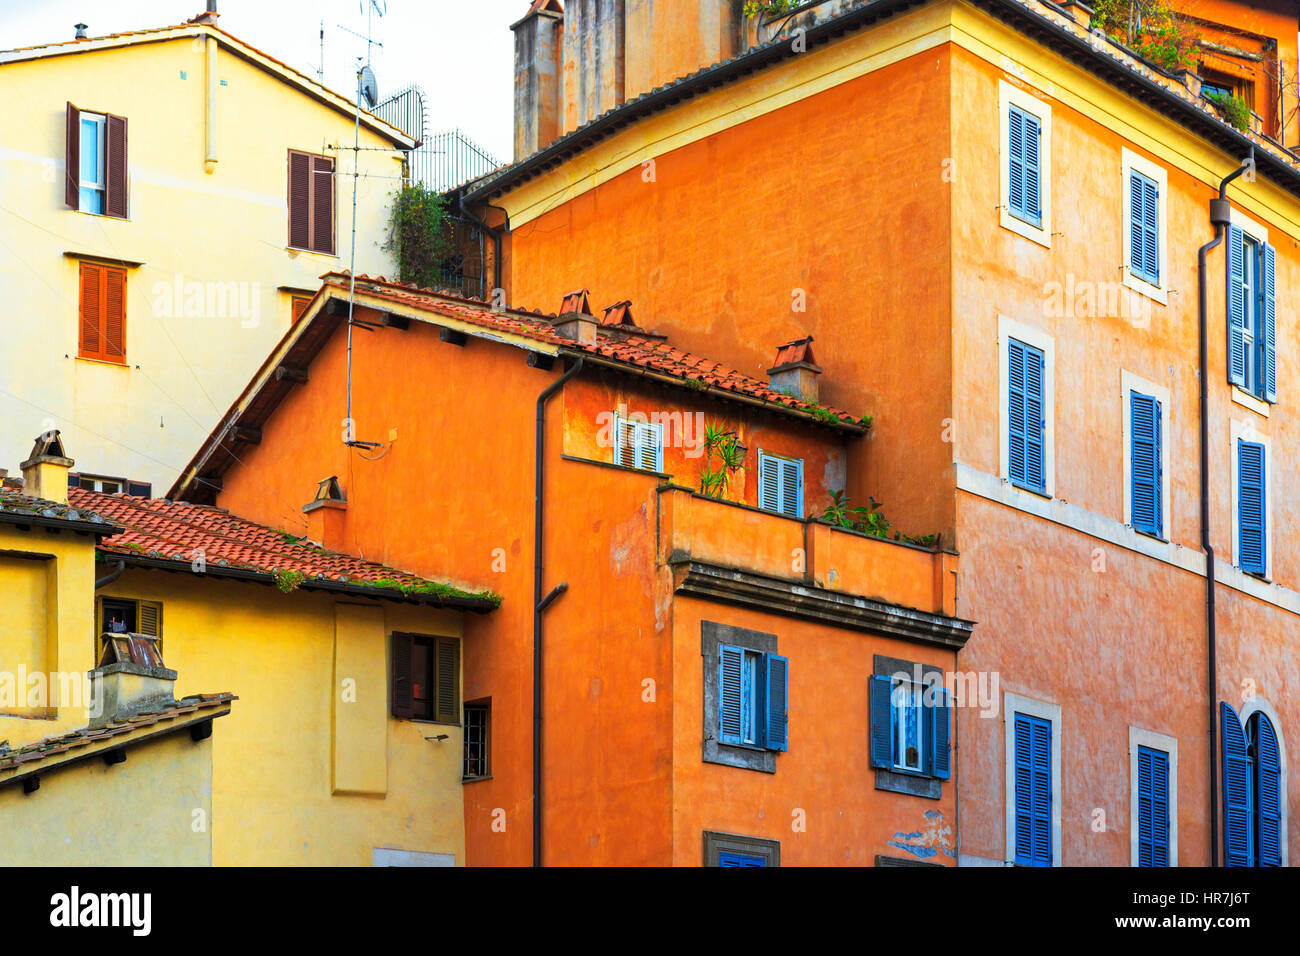 Colourful house detail in residential area of Rome, Italy - Stock Image